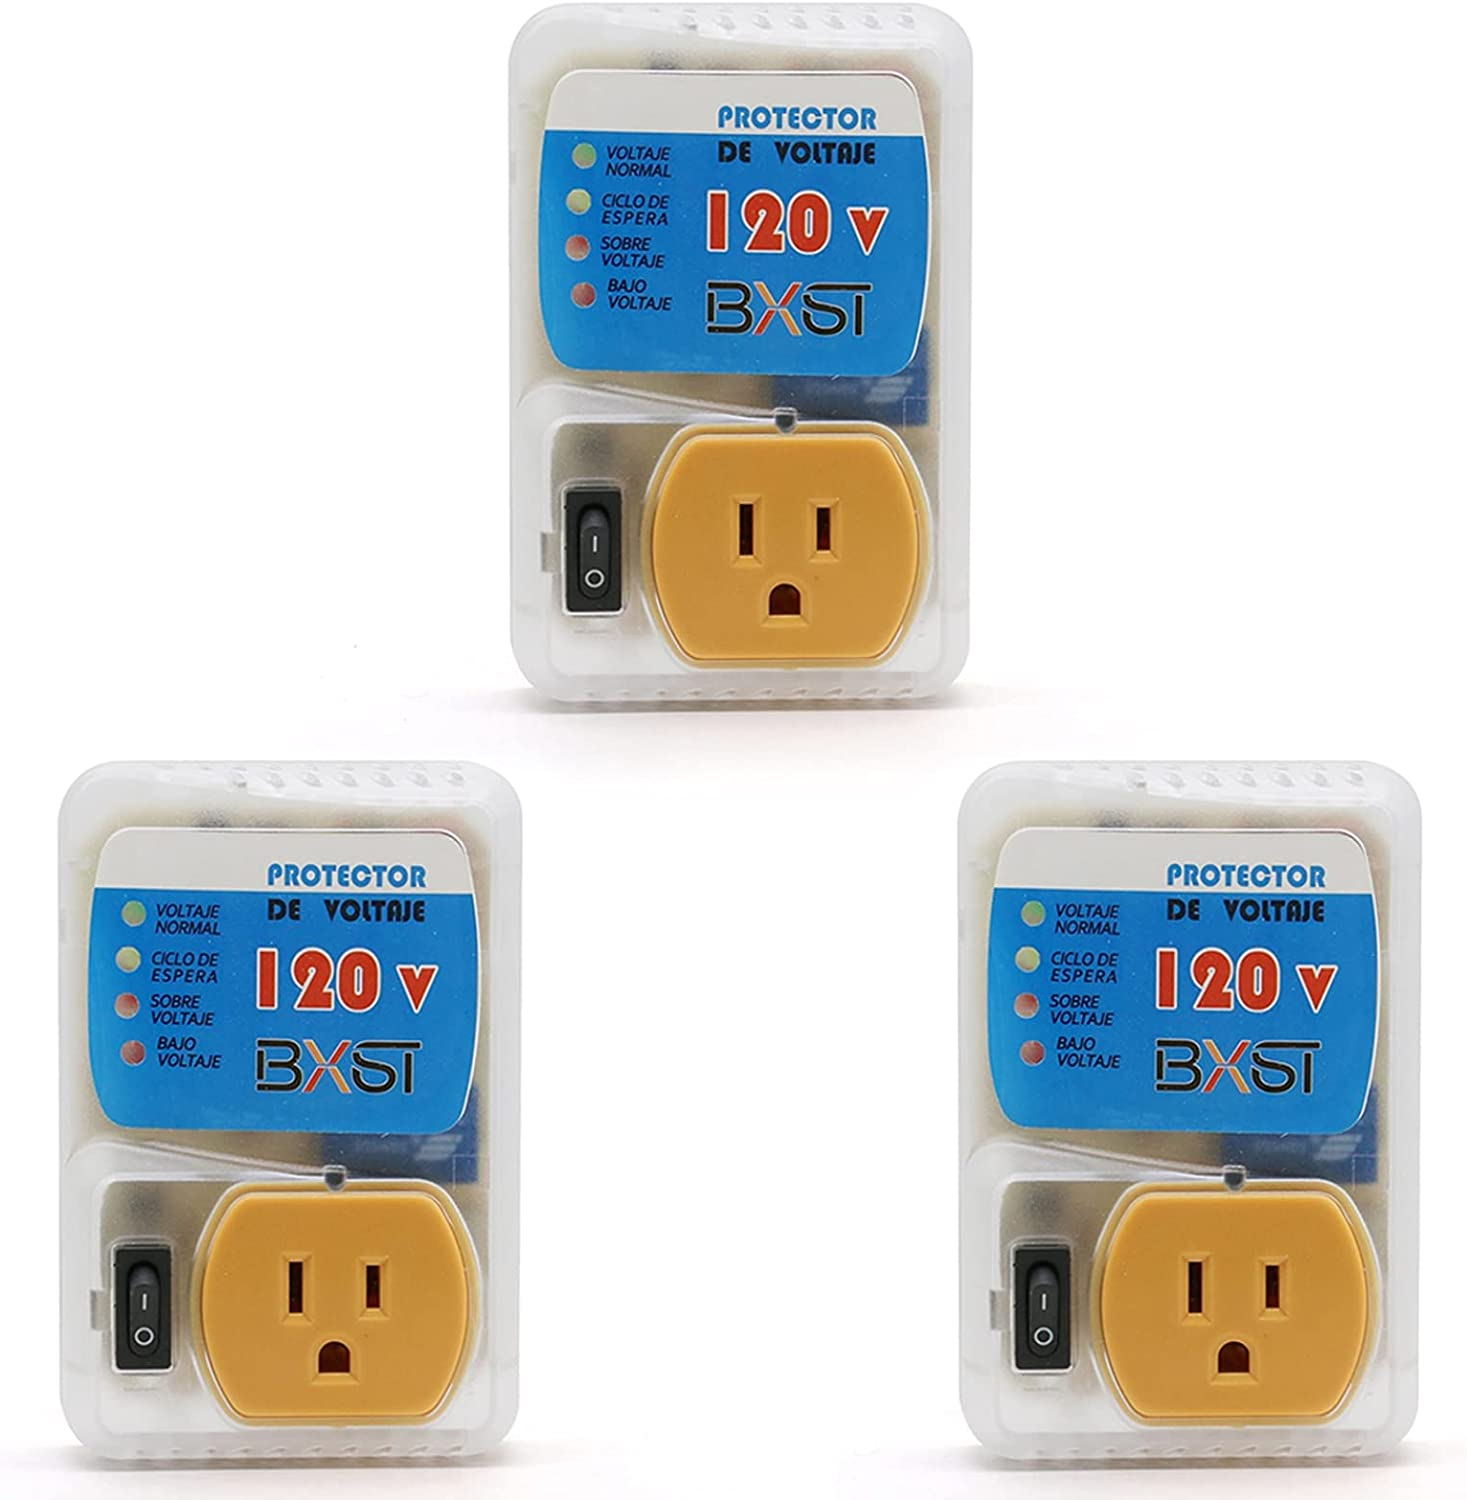 1 Outlet Surge Protector, BSEED 120V Voltage Protector Portable Power Strip Multi Function Plug Outlet Extender with Indicator Lights Wall Adapter for Home/Office/School/Travel 2400W 3 Pack